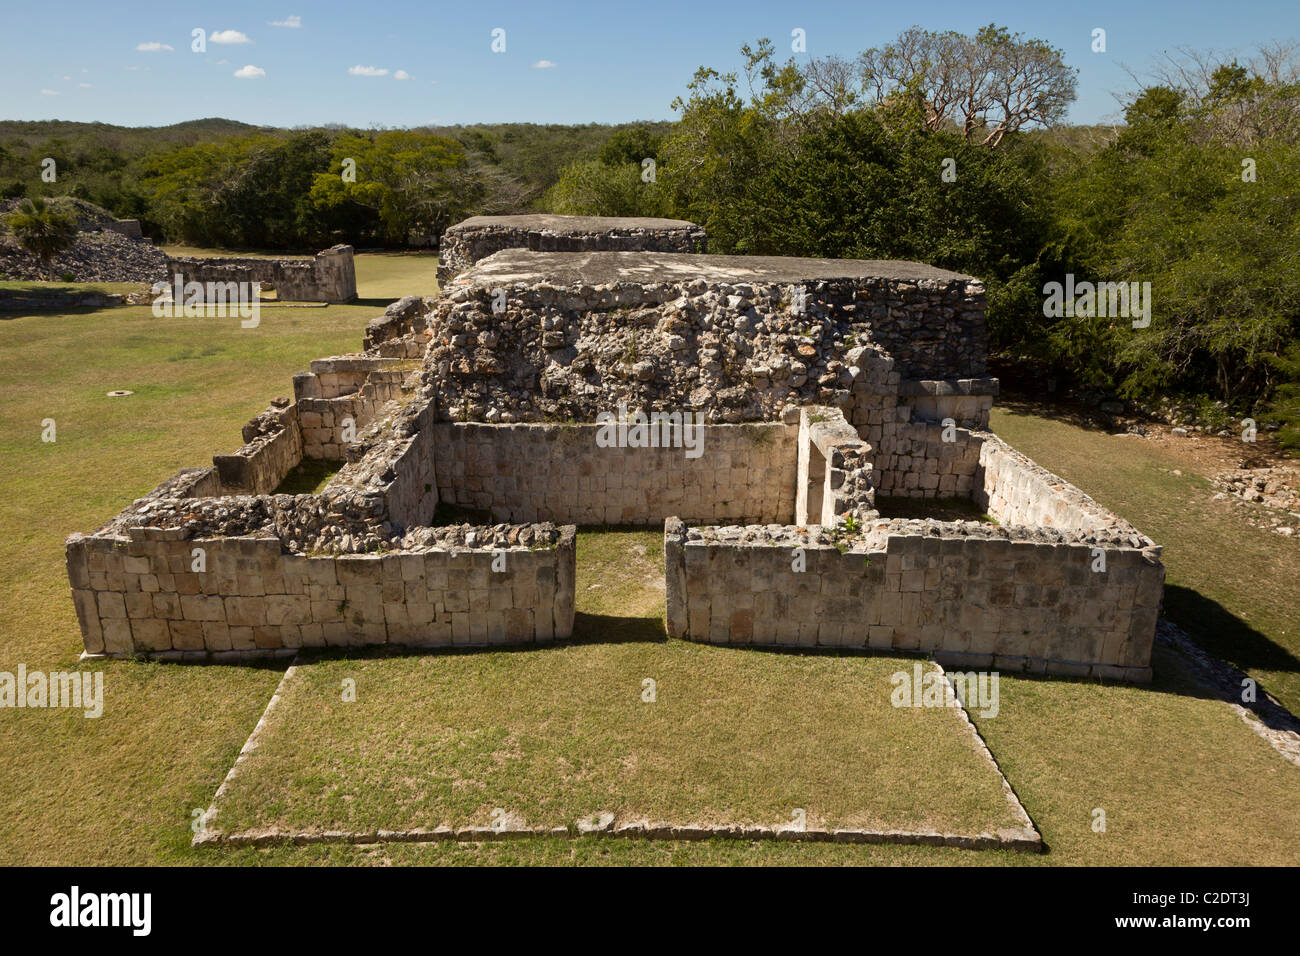 Temple ruins at the Puuc style Maya city ruins of Kabah along the Puuc Route in the Yucatan Peninsula, Mexico. Stock Photo